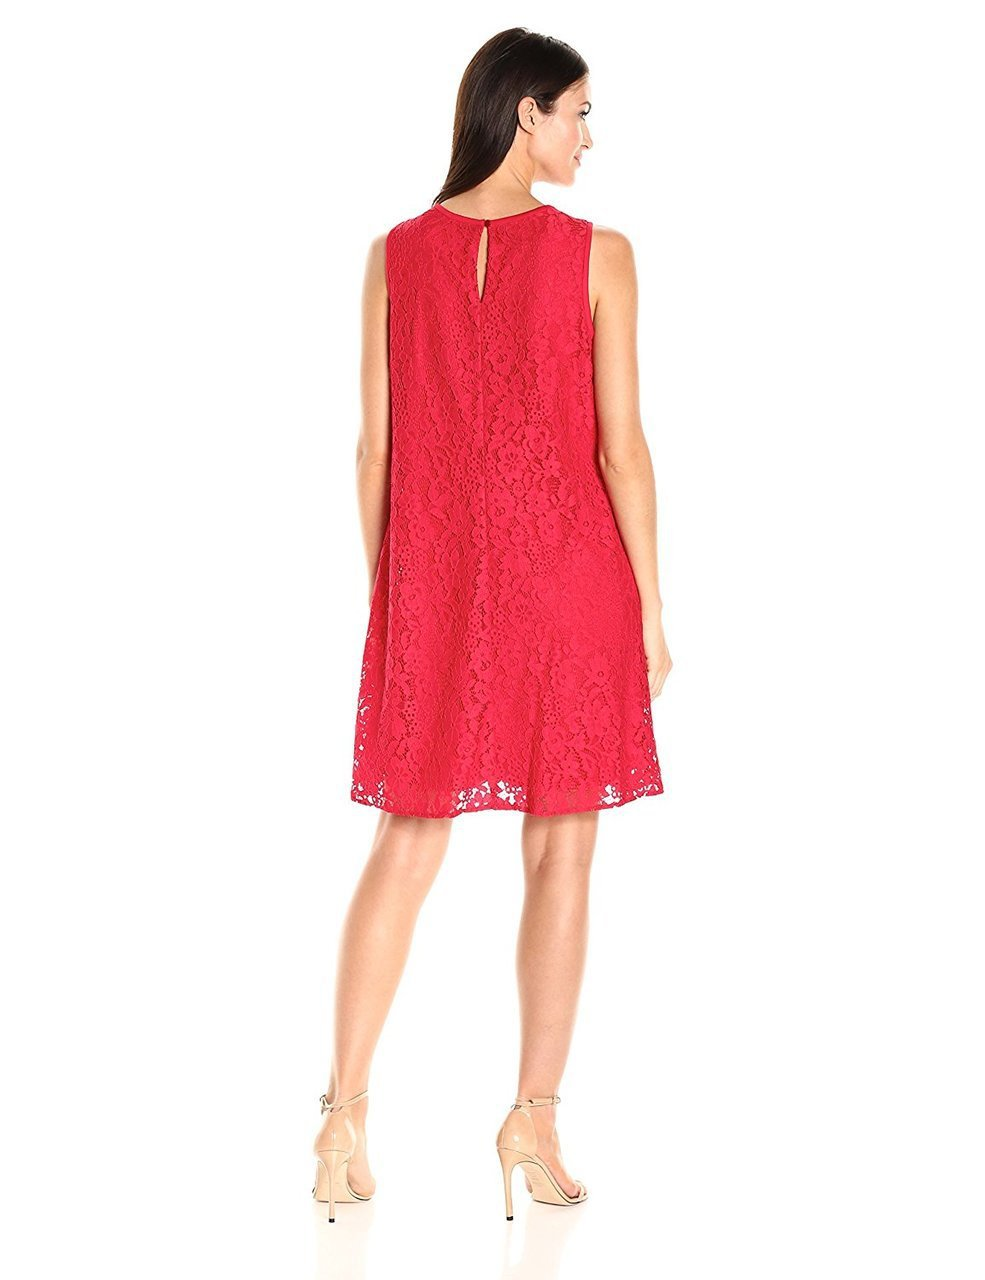 Nine West - 10647202 Sleeveless Floral Lace Cocktail Dress in Red